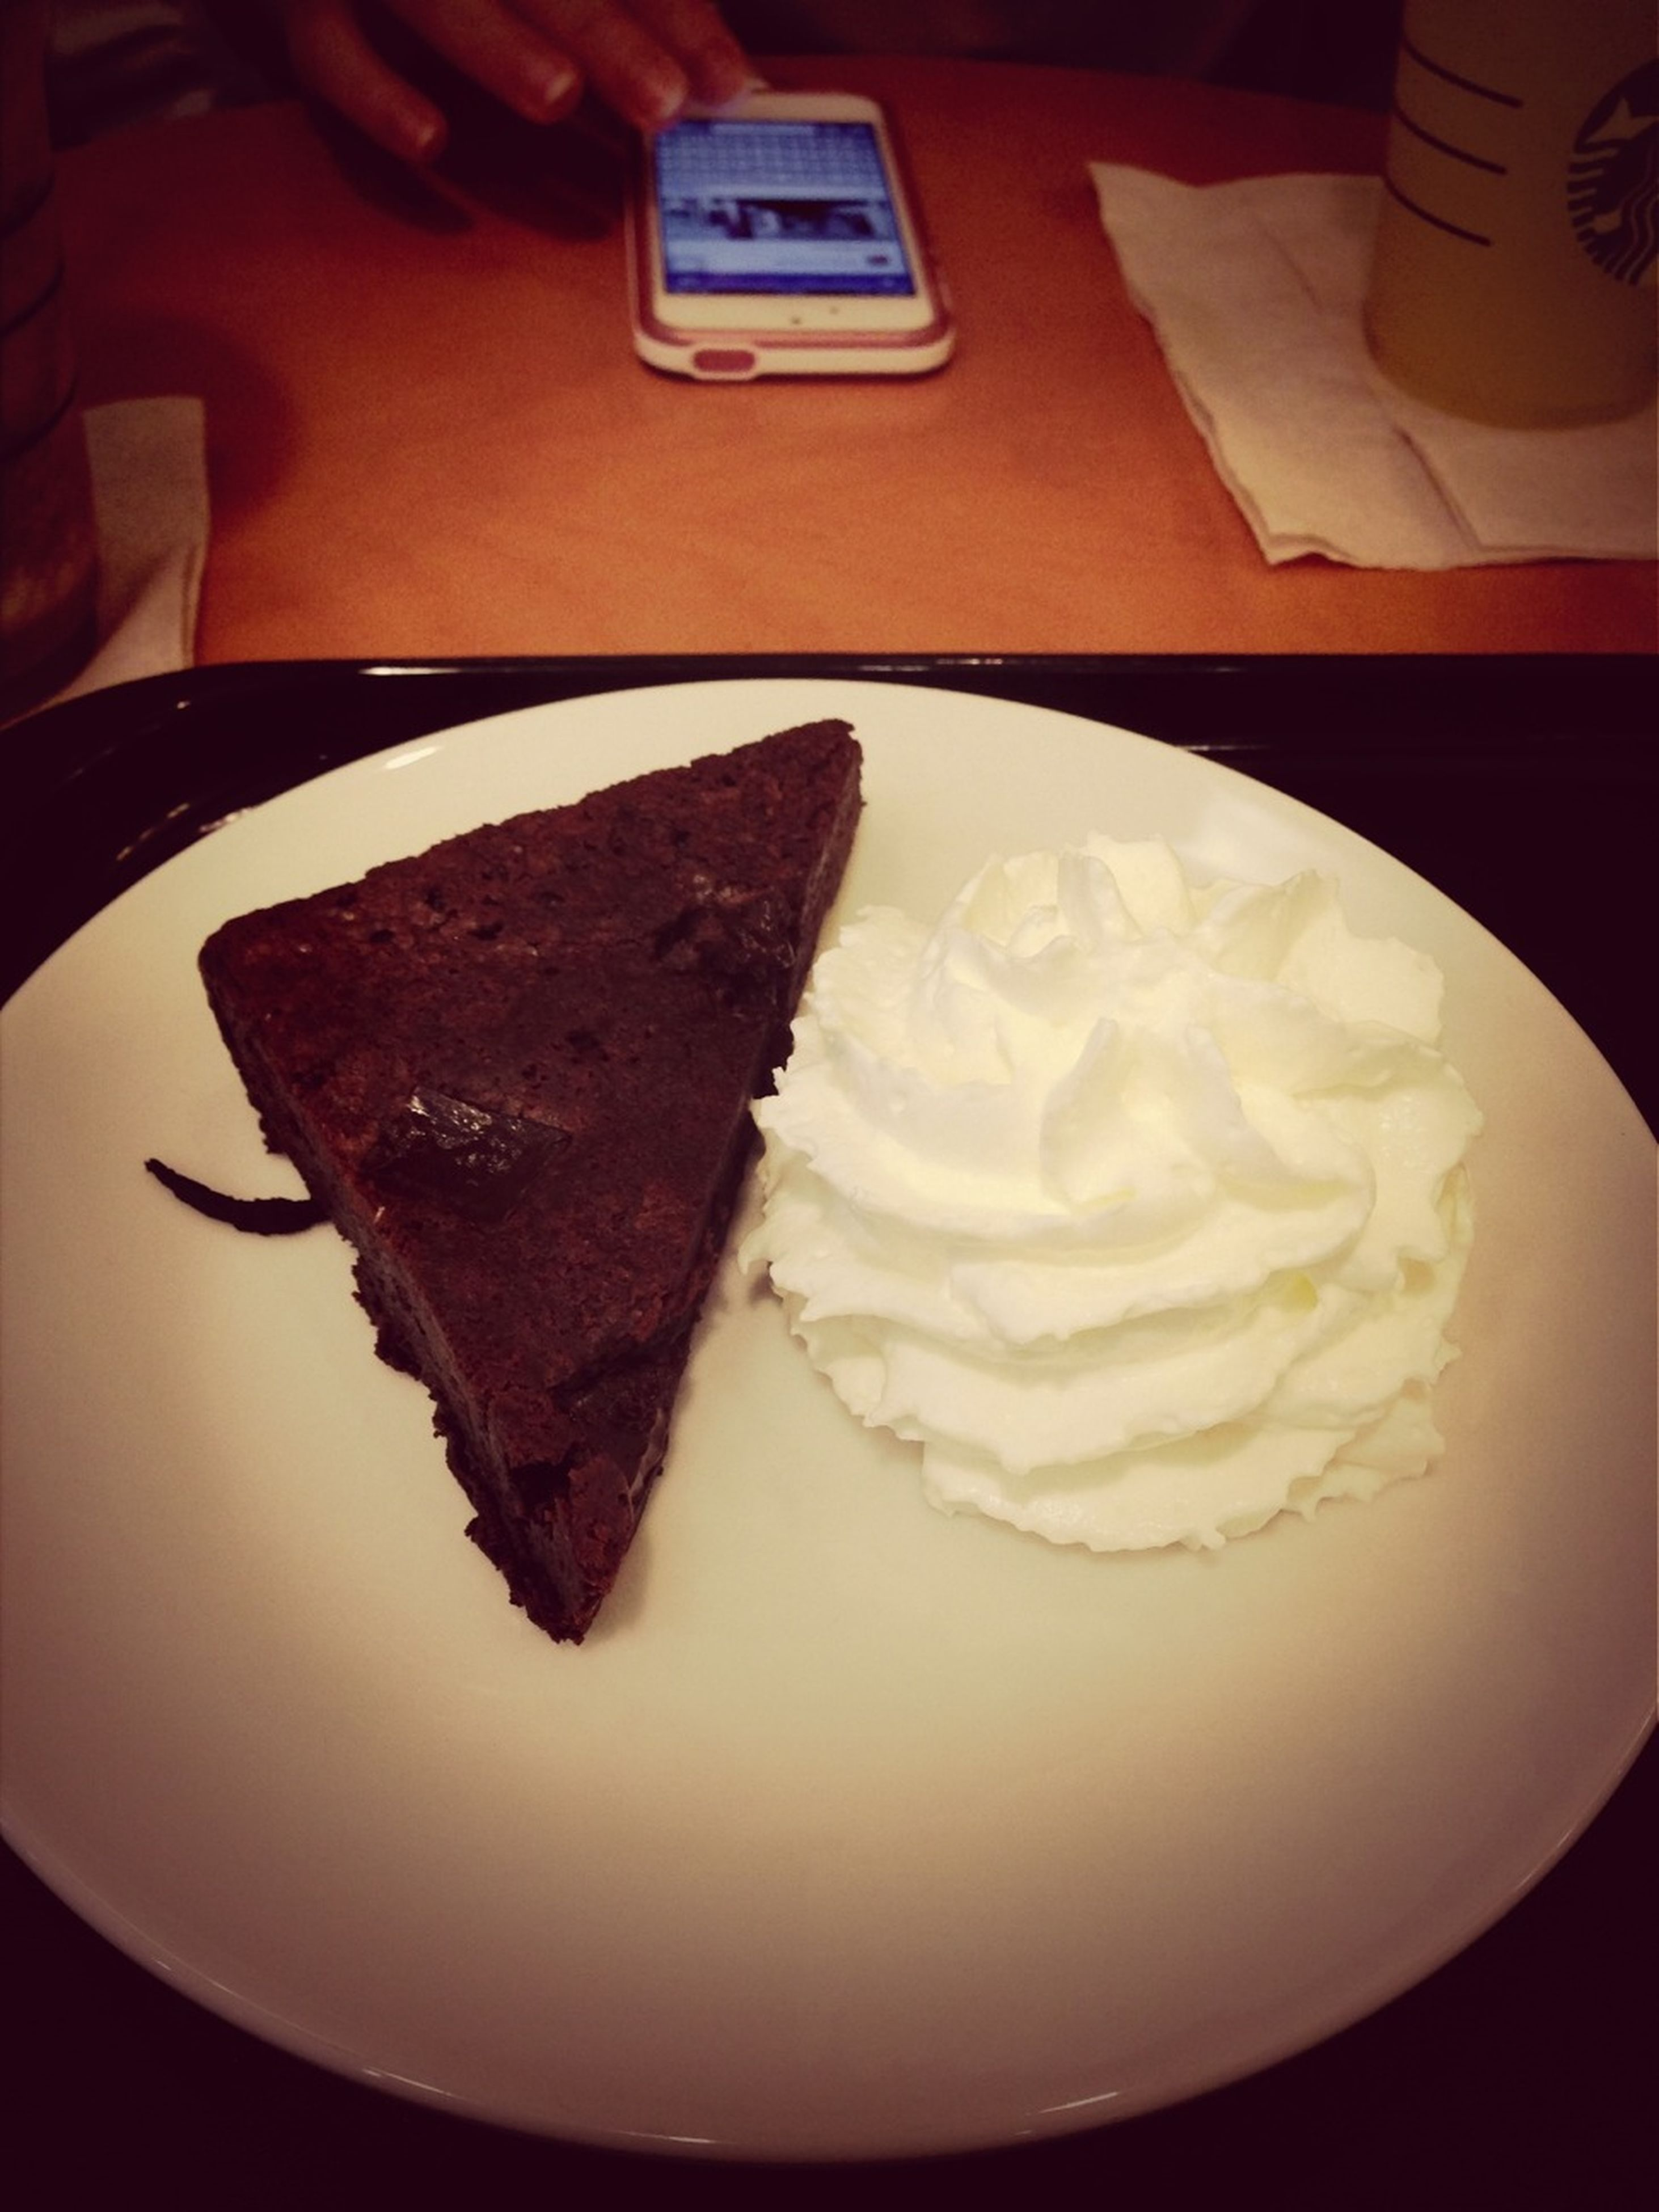 indoors, sweet food, food and drink, food, dessert, freshness, indulgence, ready-to-eat, unhealthy eating, still life, cake, close-up, temptation, high angle view, plate, table, chocolate, pastry, no people, cream